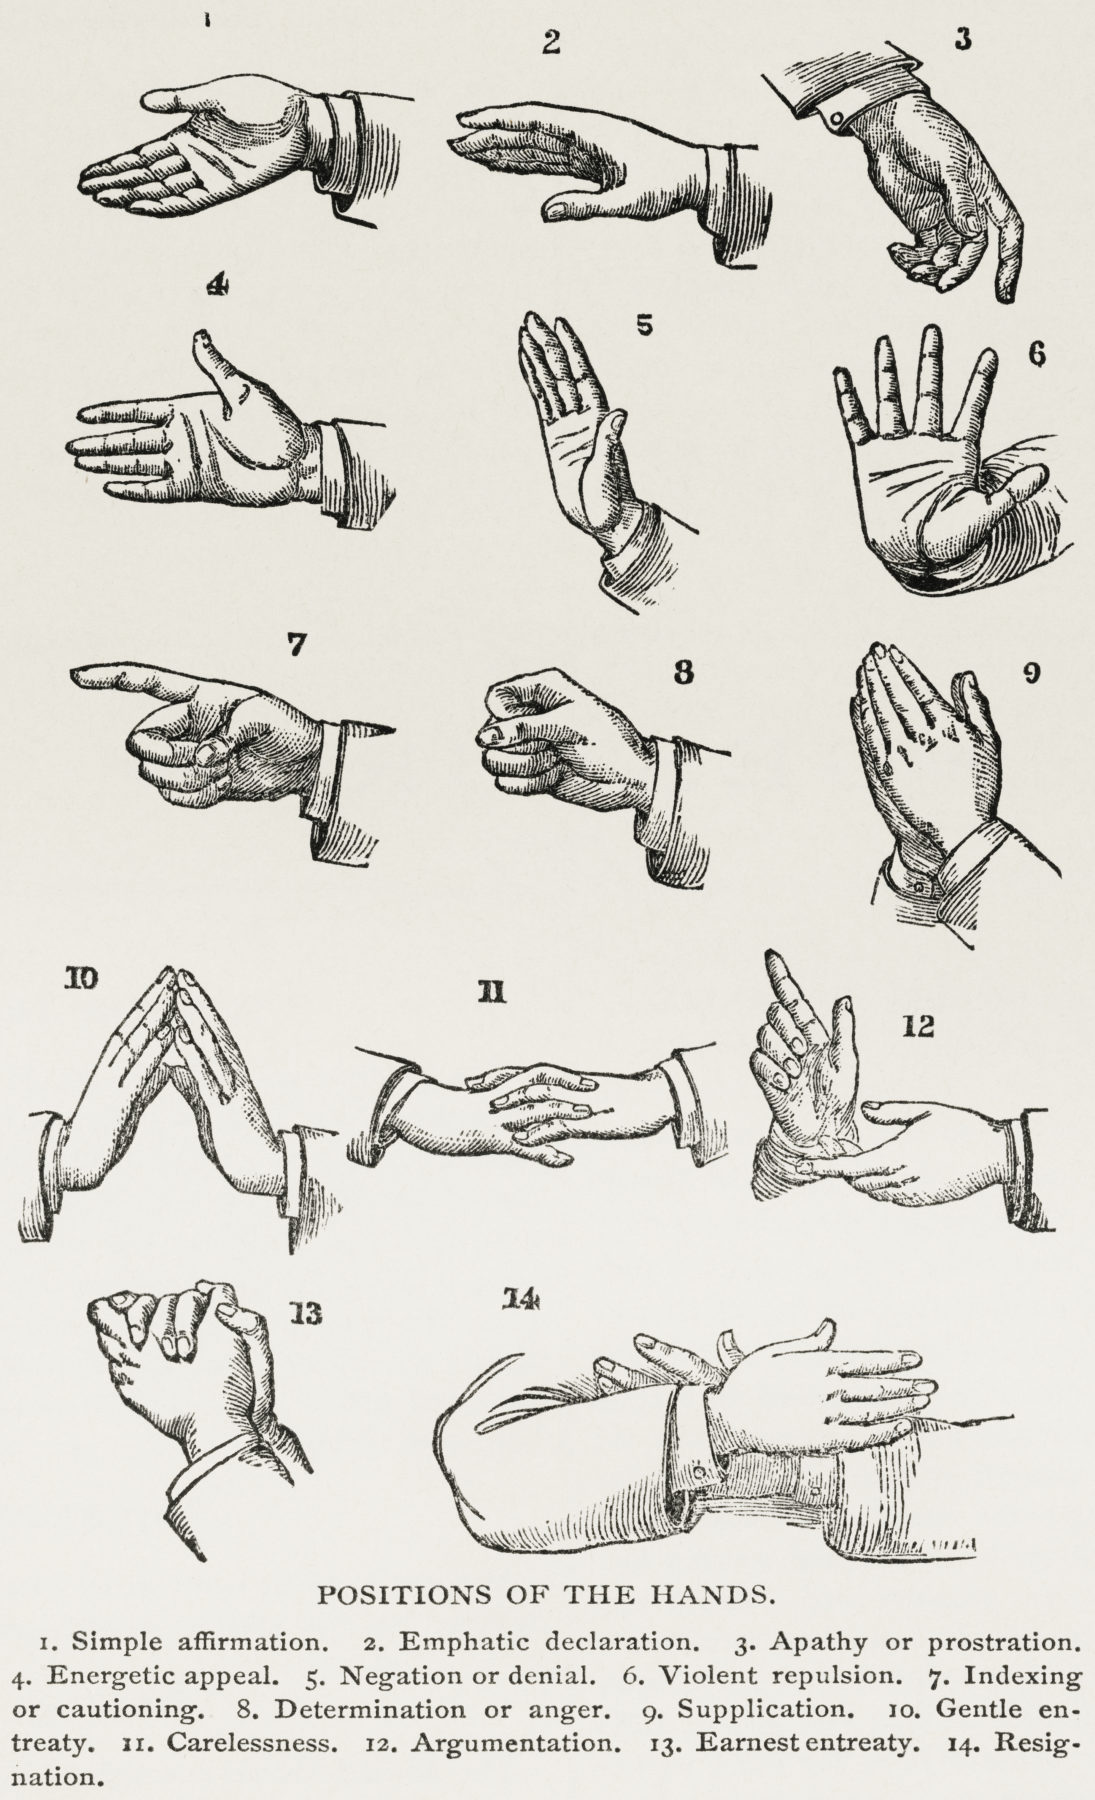 Positions of the Hands